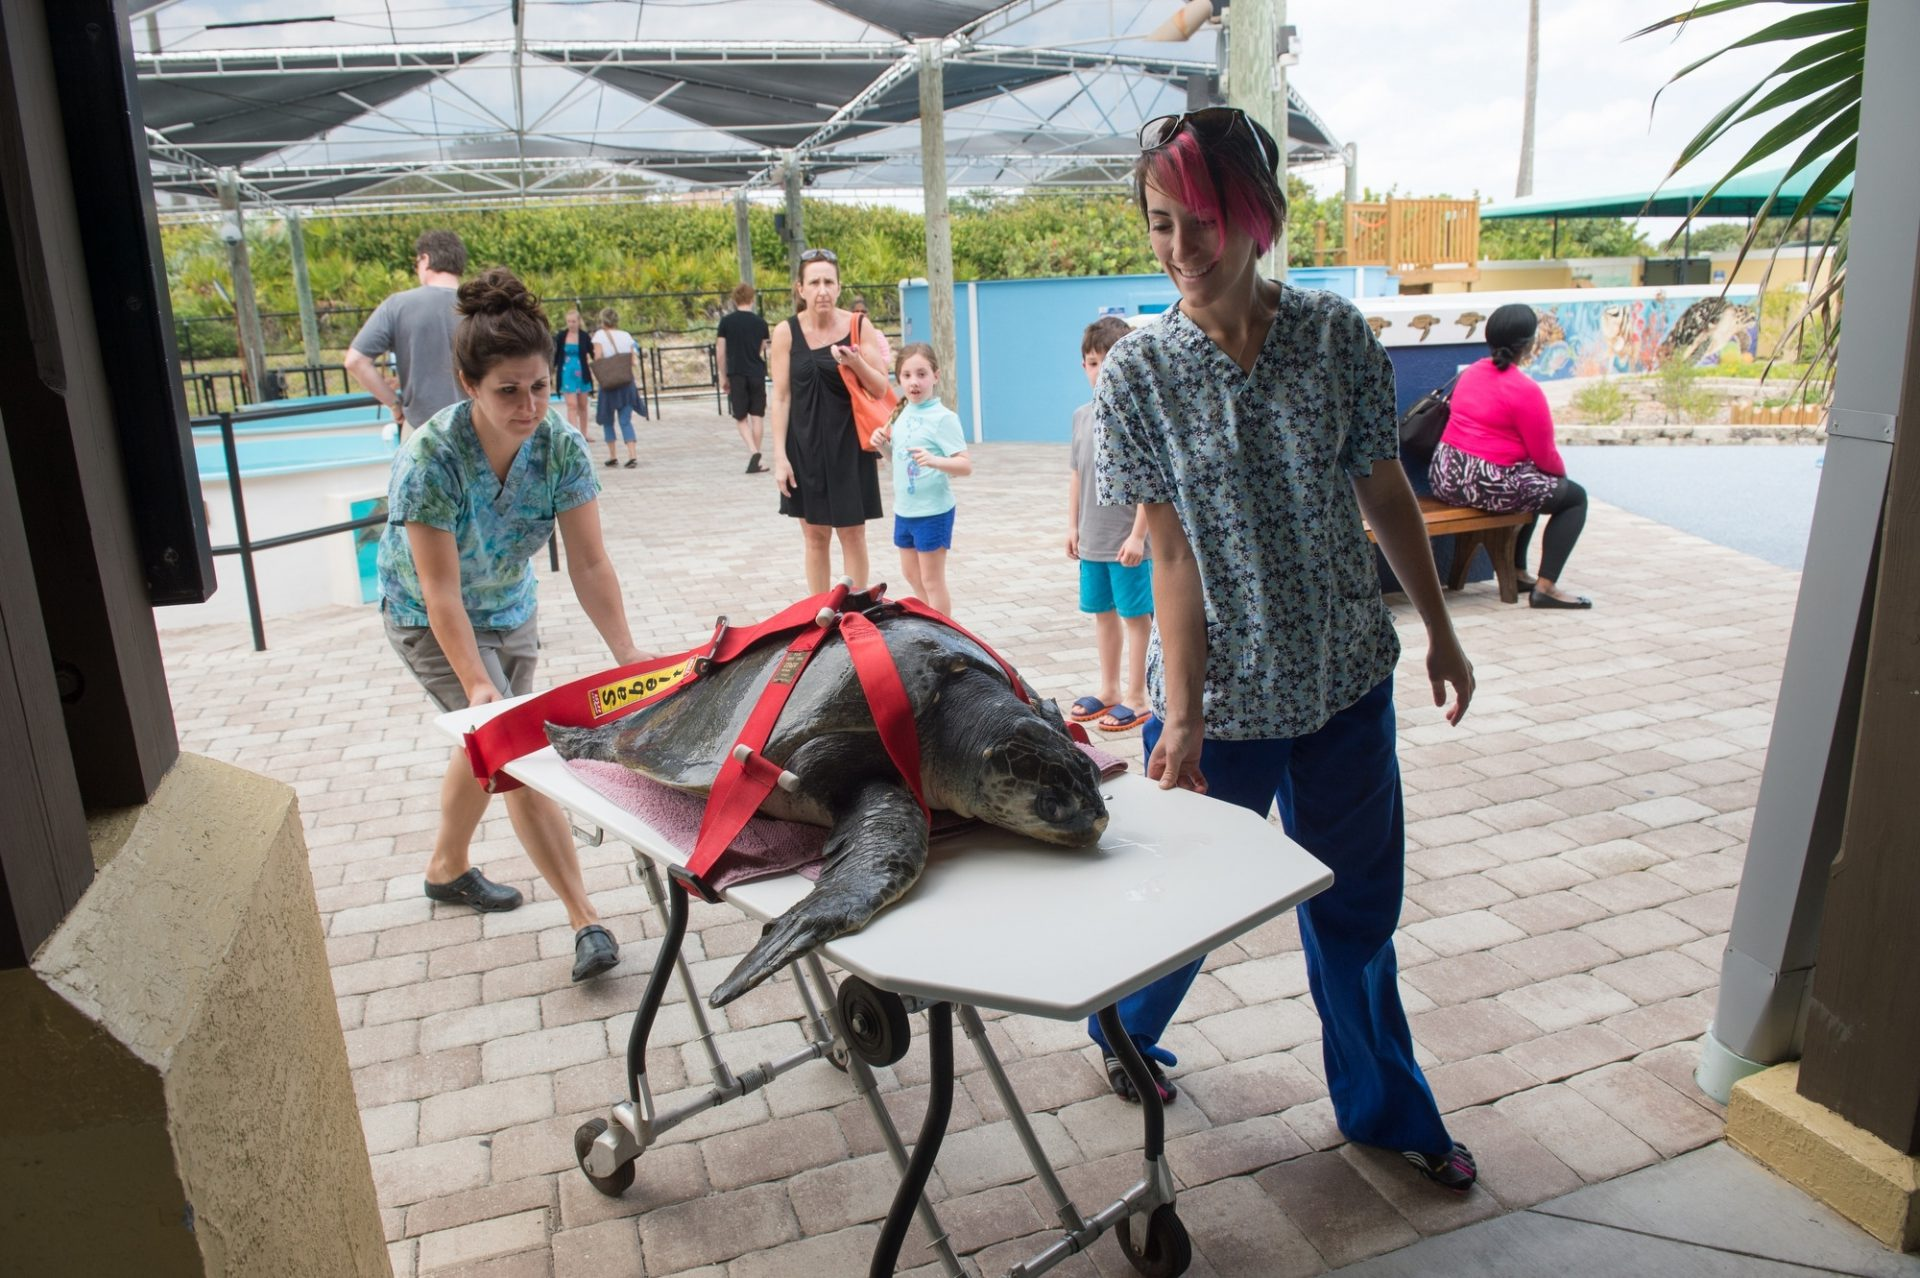 Photo: Staff members at the Loggerhead Marinelife Center transport 'Megan' an olive ridley sea turtle (Lepidochelys olivacea). This animal came in after becoming entangled in fishing gear.